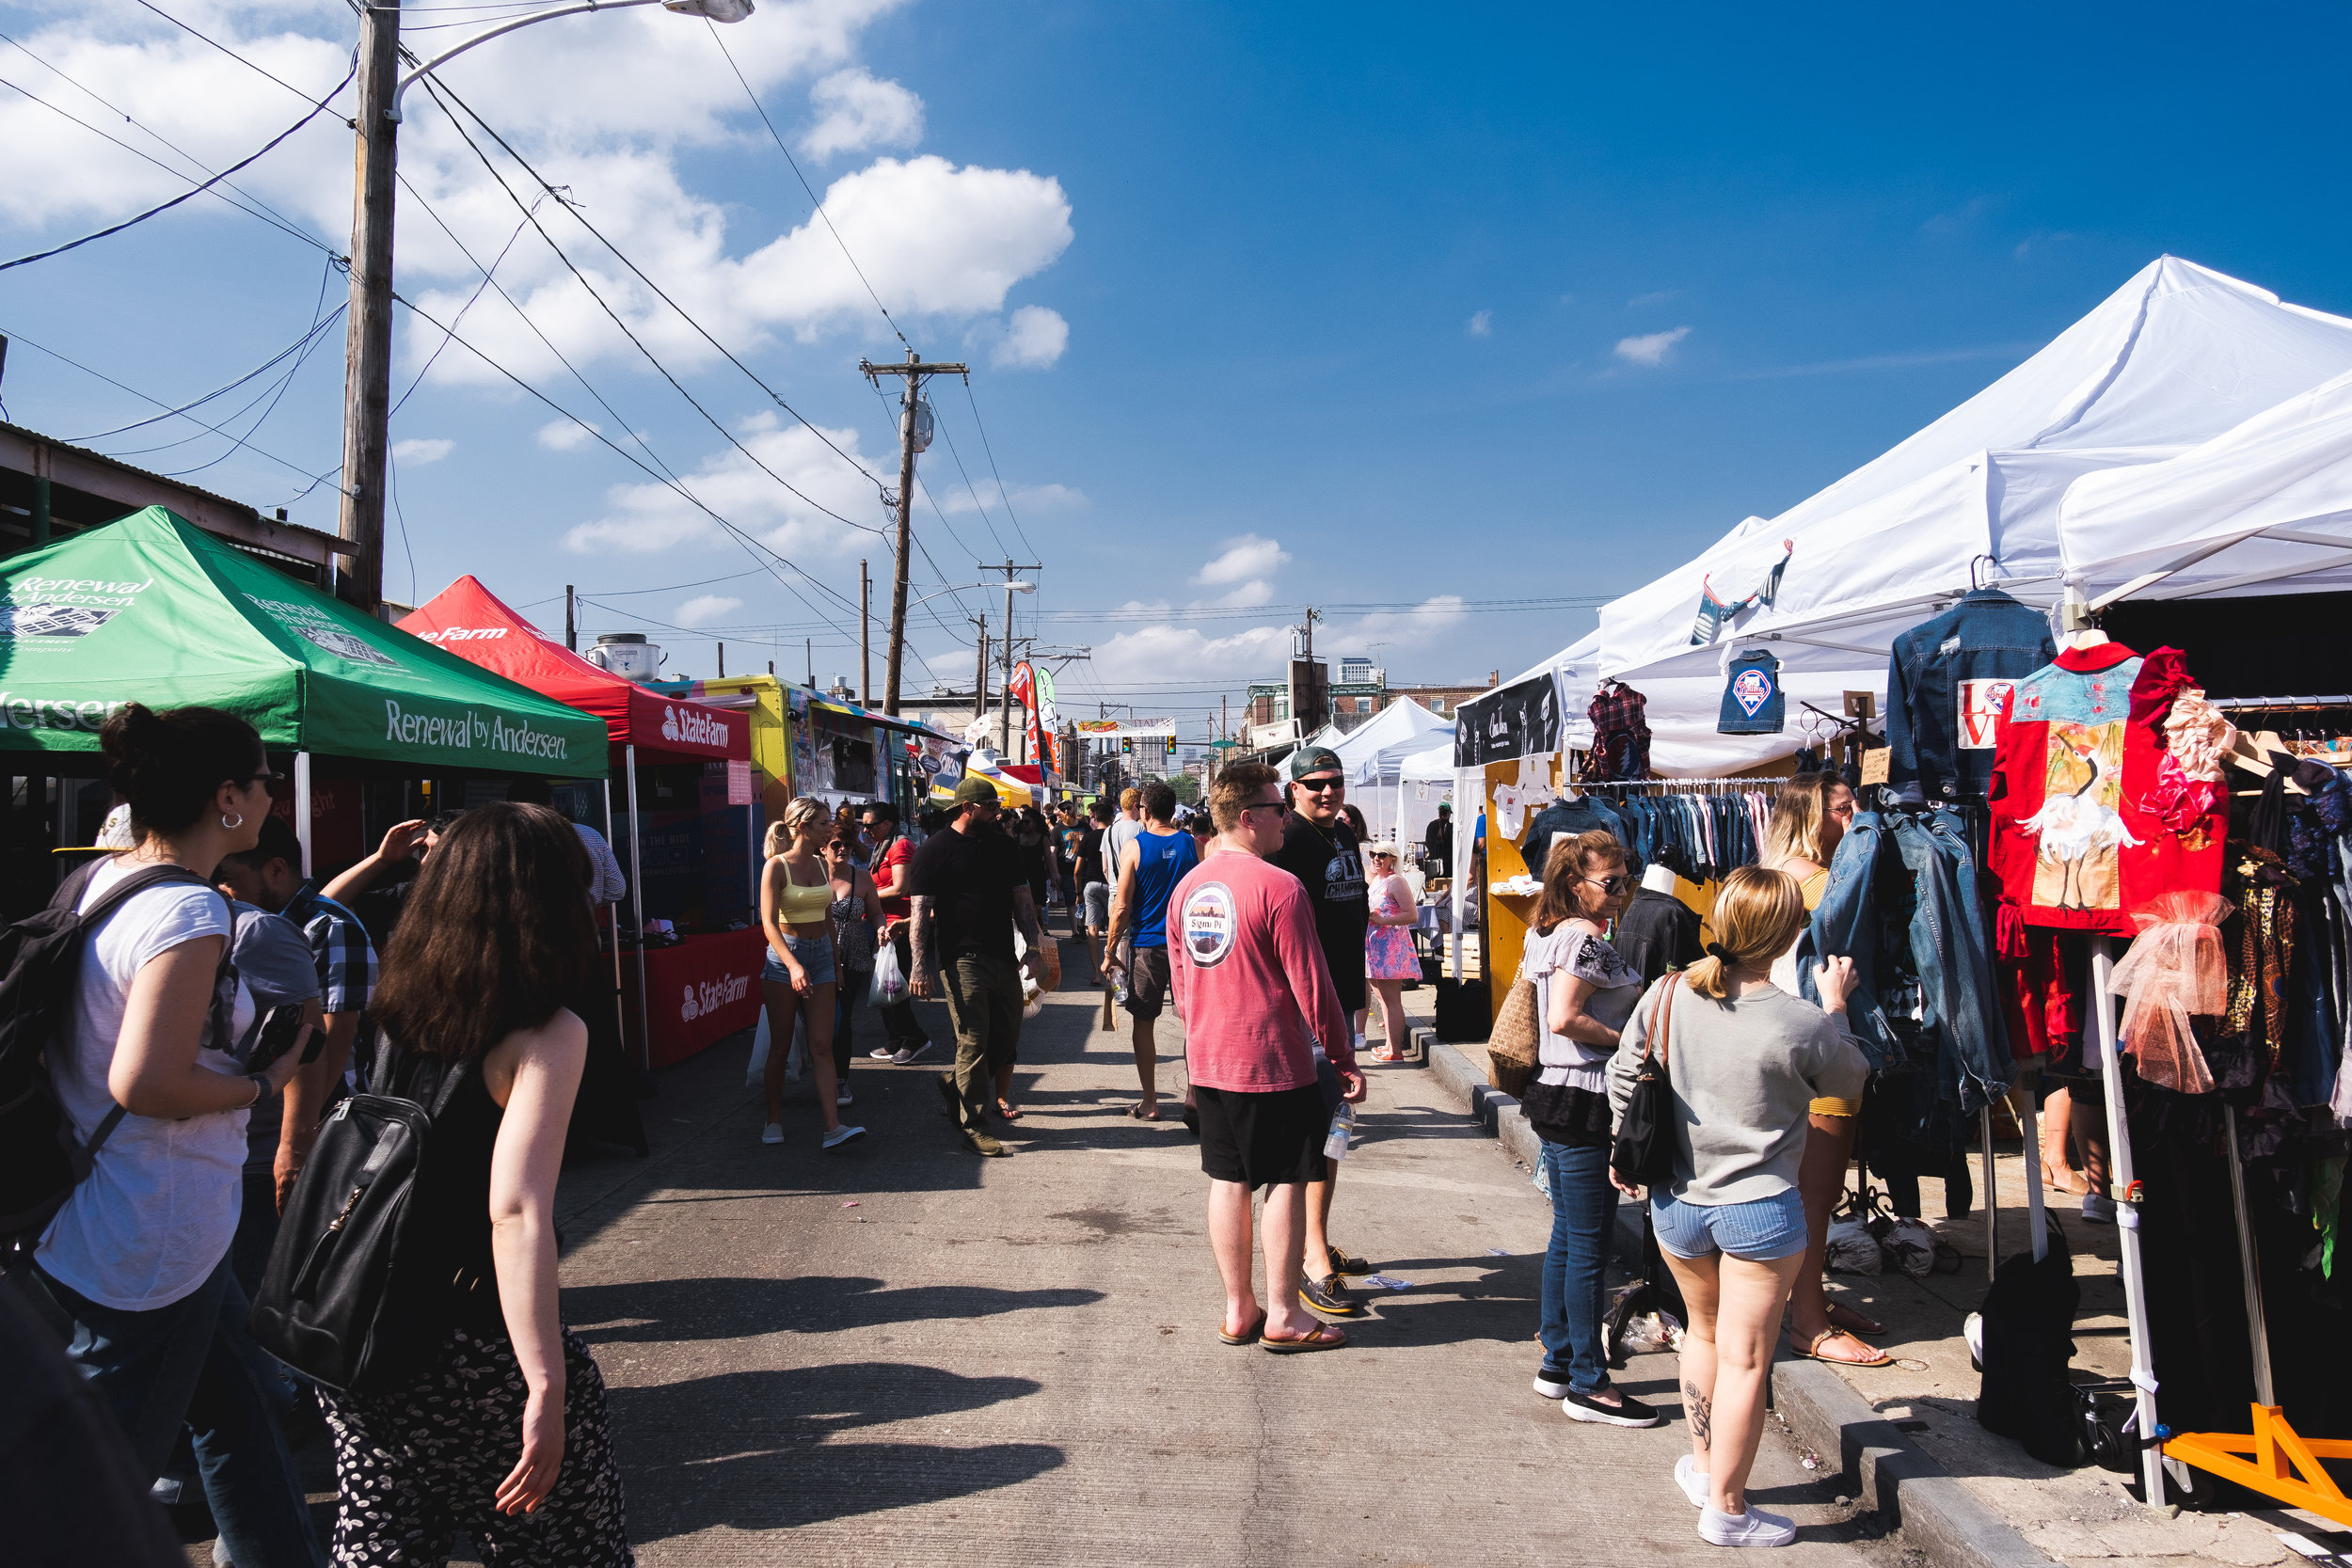 2019_ITALIAN MARKET FEST_EVENTS_THE PHILLY CHECKLIST-3.jpg